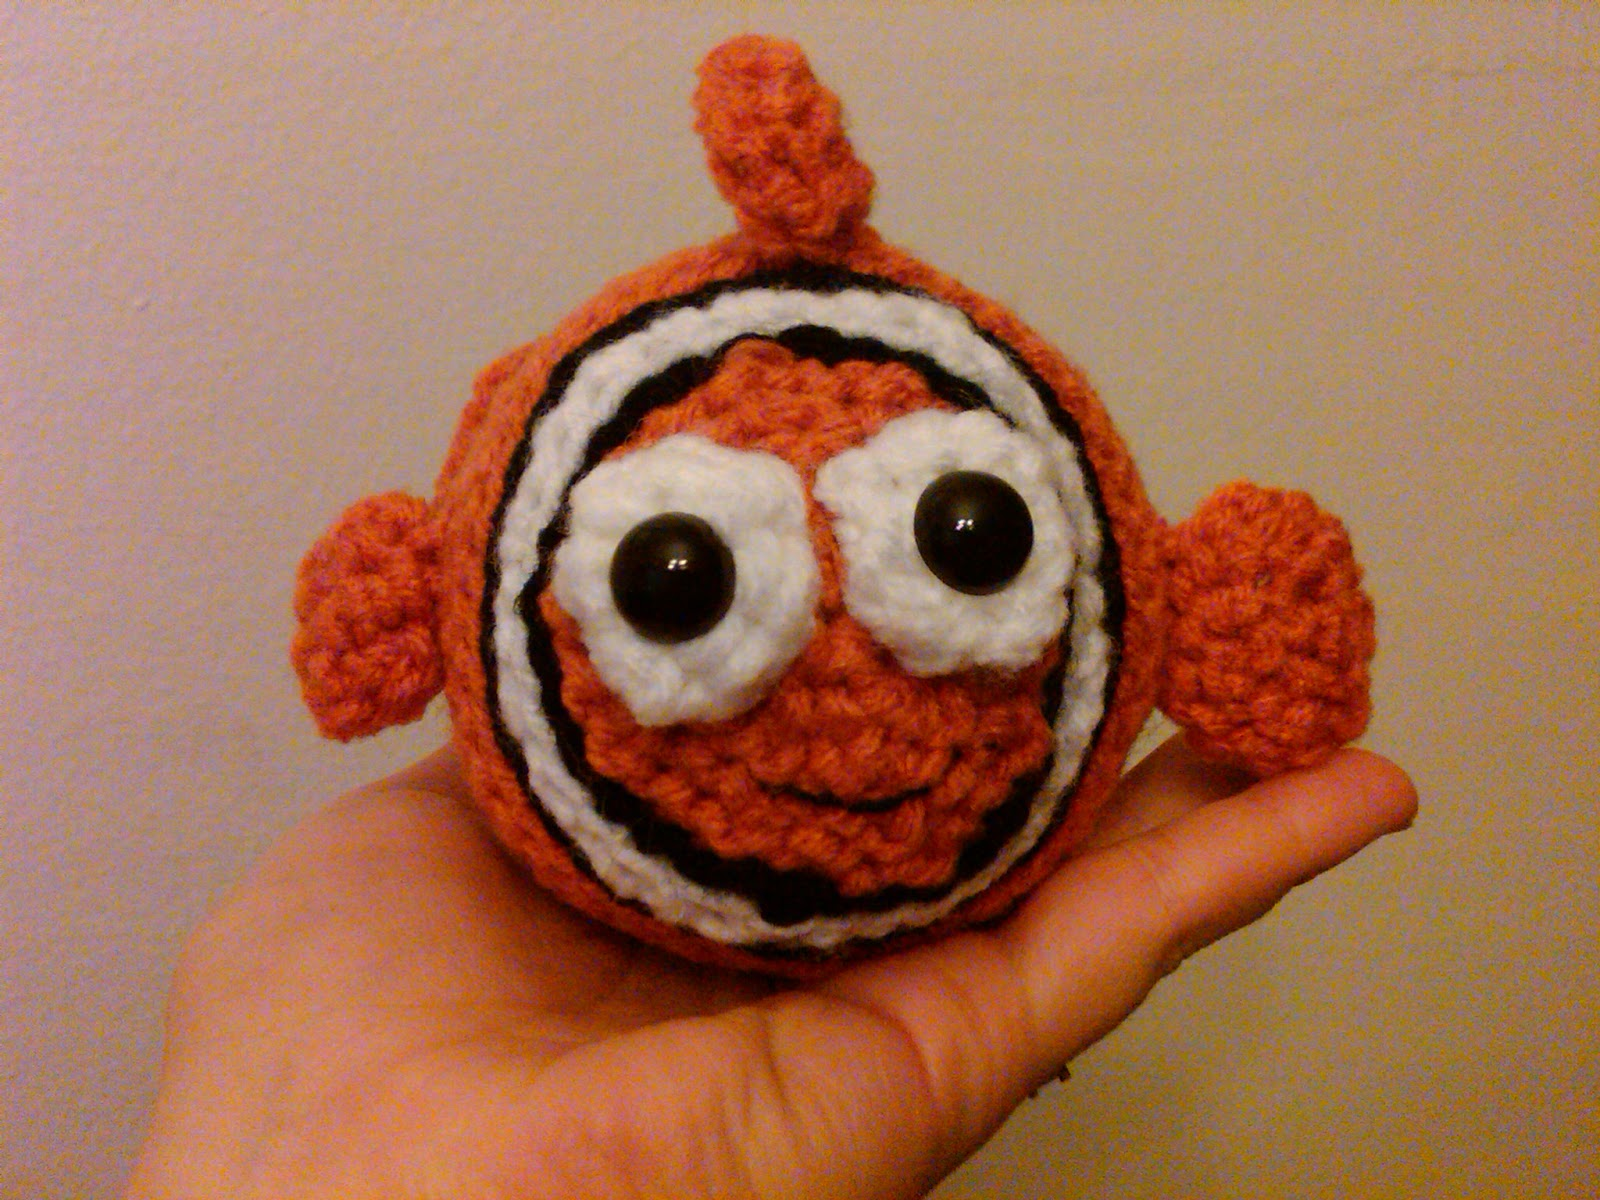 Amigurumi Sailor Octopus Pattern Free : Picturing Disney: My Original Disney Crochet Patterns